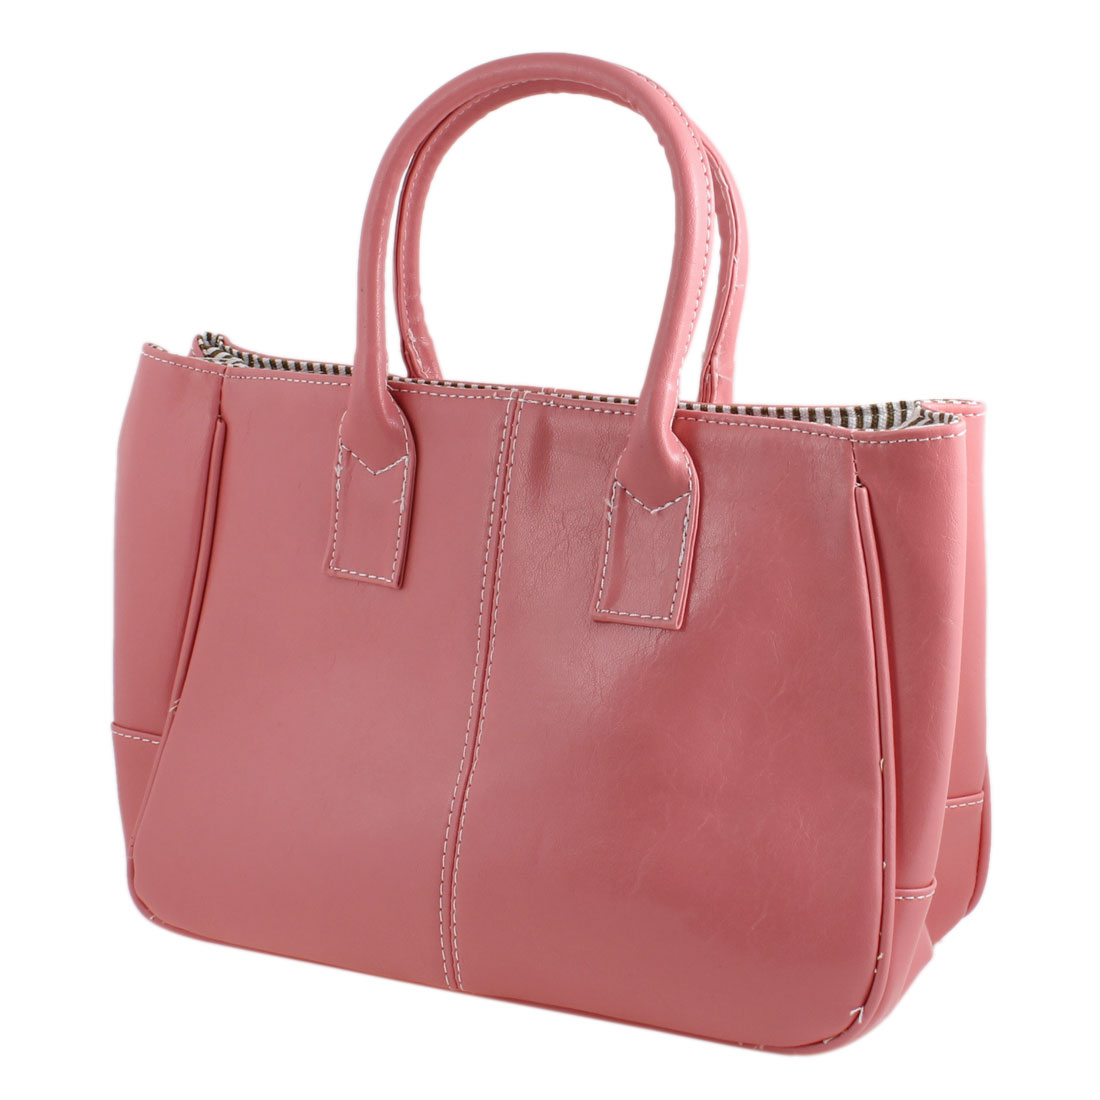 Faux Leather Magnetic Button Closure Tote Bag Handbag Pink for Women